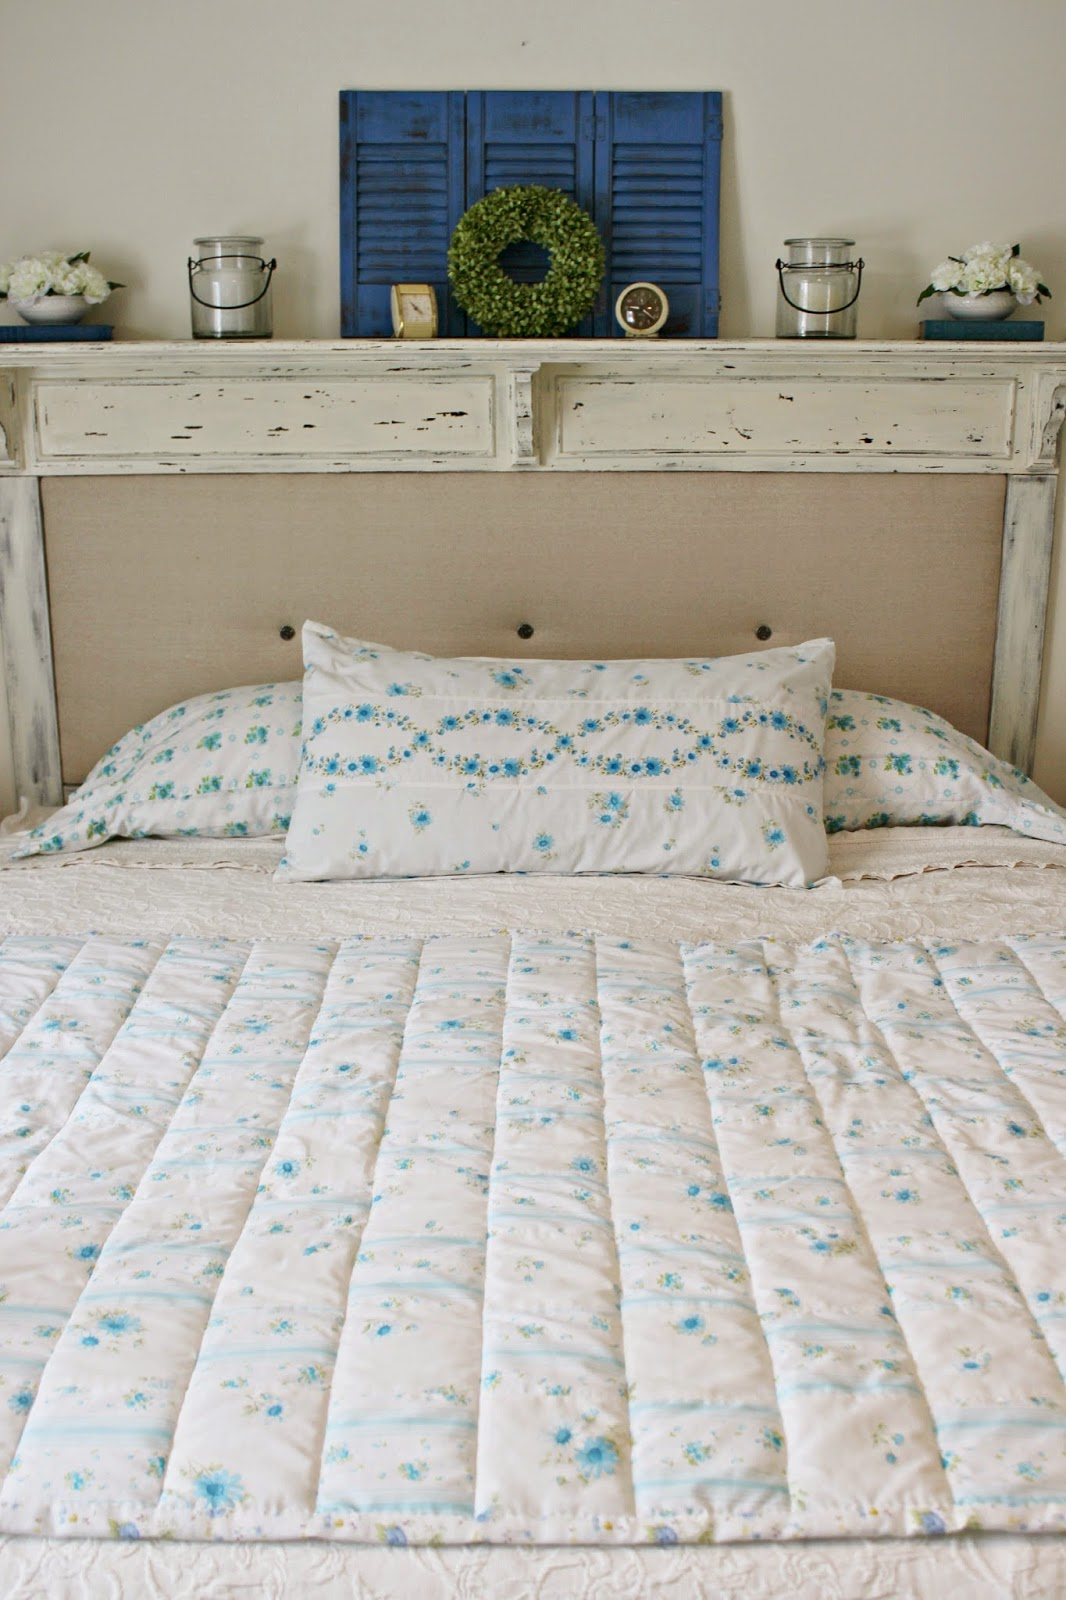 Stunning Vintage Inspiration Party u Bed Springs Bed Sheets and More